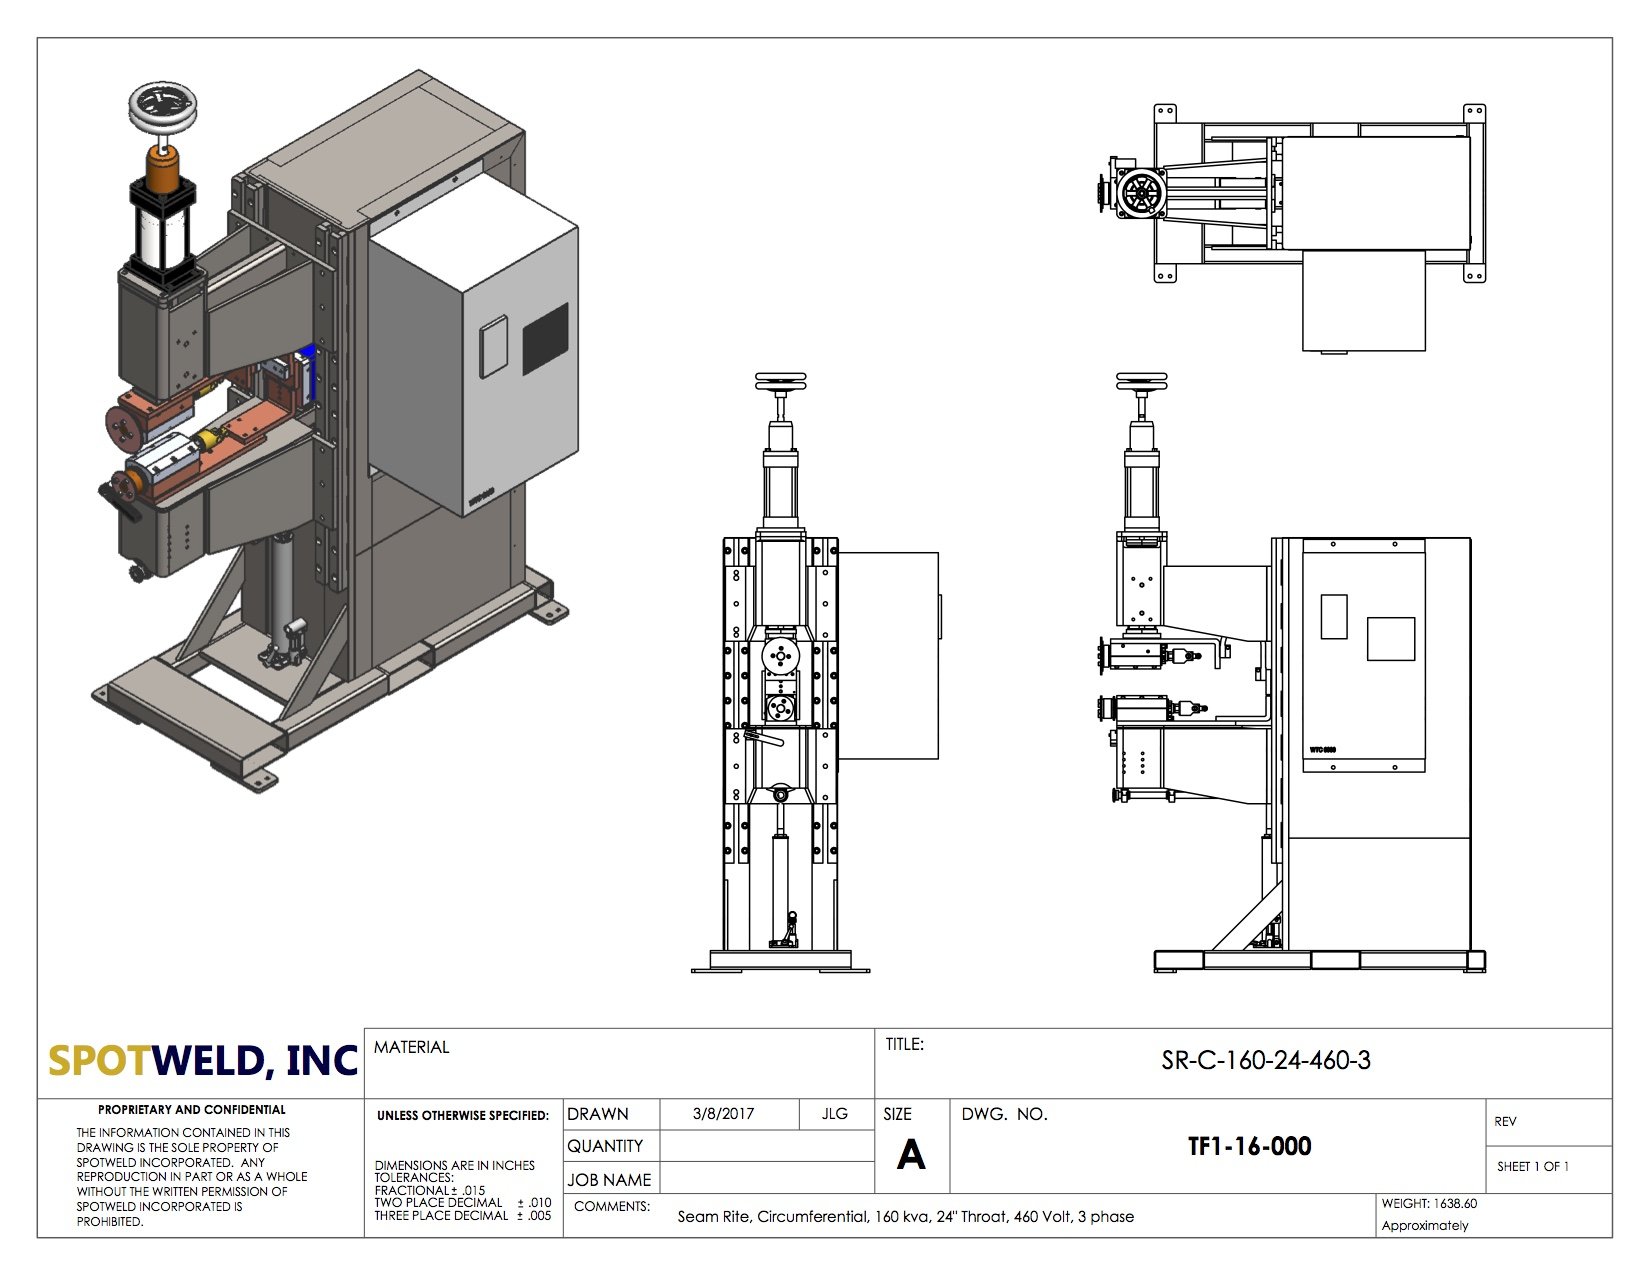 Inverters Mfdc Spot Weld Inc Welding Circuit Diagram Swi Inverter Seam Welder